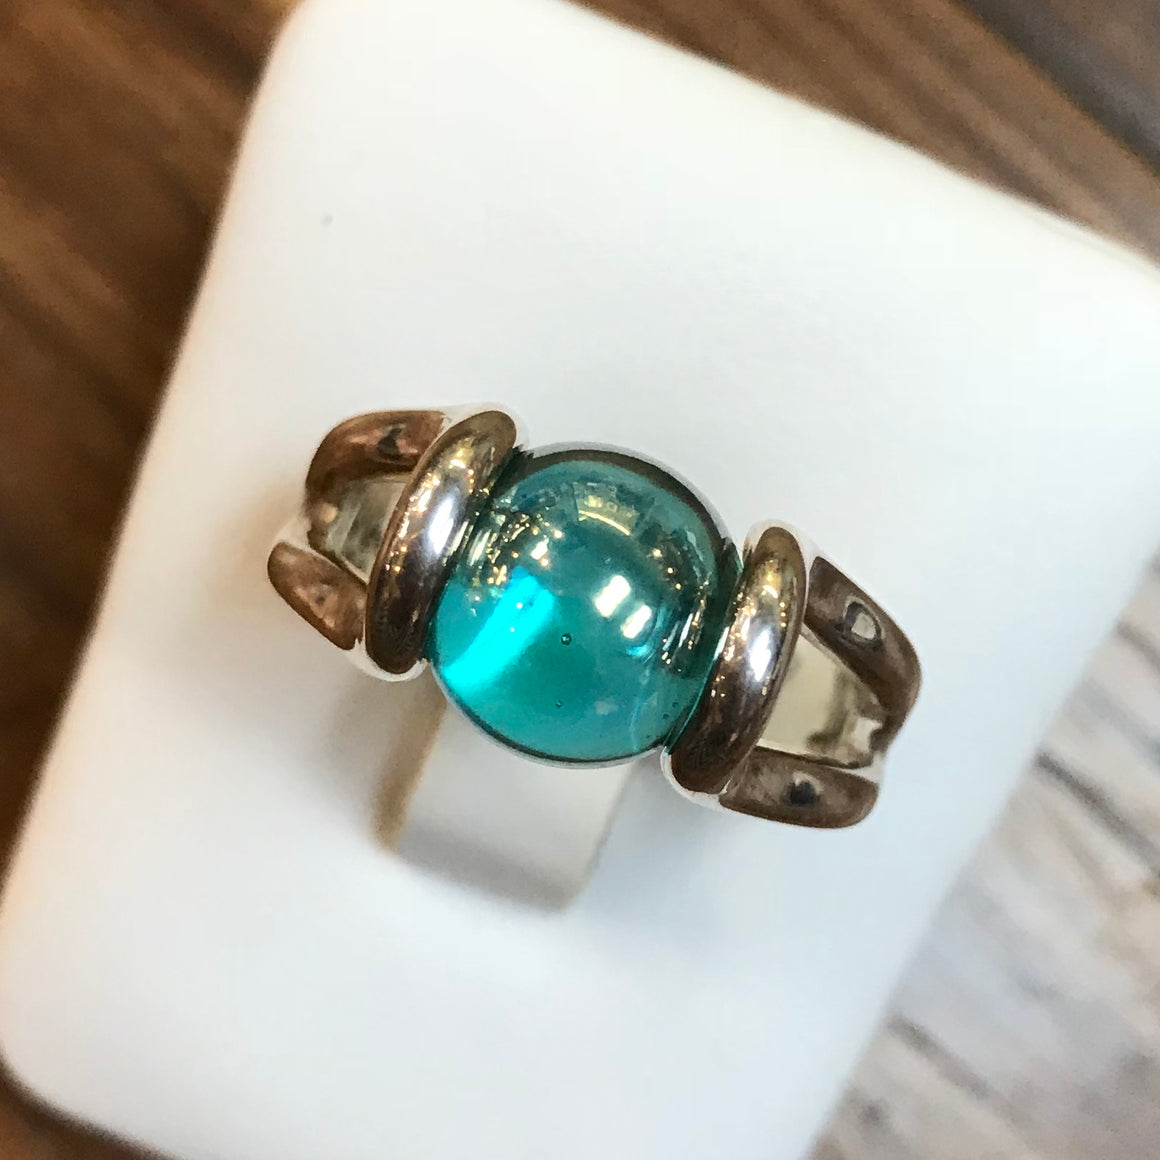 Marble POP Joy Ring - Got All Your Marbles?